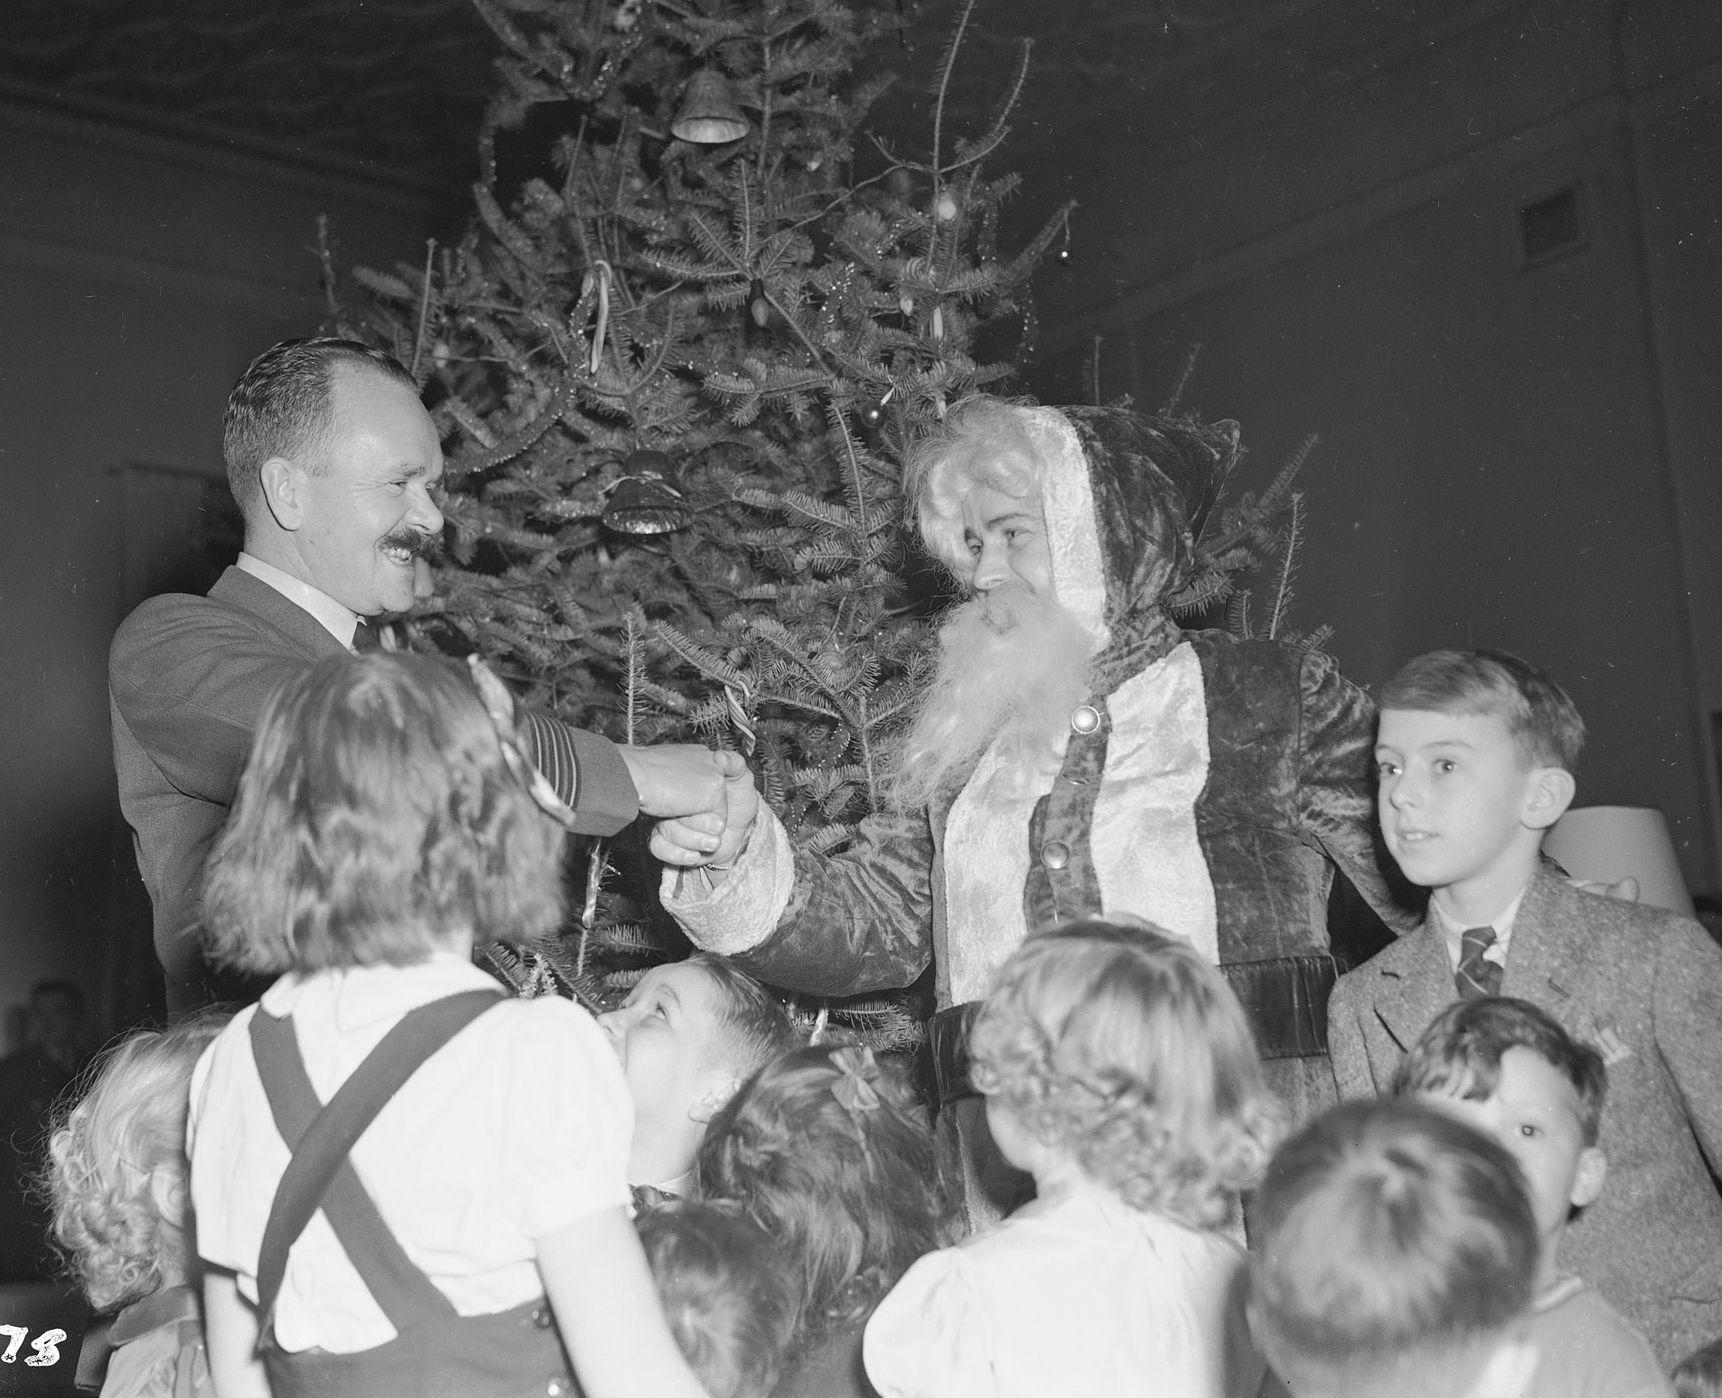 Wing Commander A. J. Hanchet-Taylor welcomes Santa Claus to the airmen's lounge at No. 6 Initial Training School in Toronto on December 24, 1942. Several children of Royal Canadian Air Force airmen wait to talk to the jolly old elf. PHOTO: DND Archives